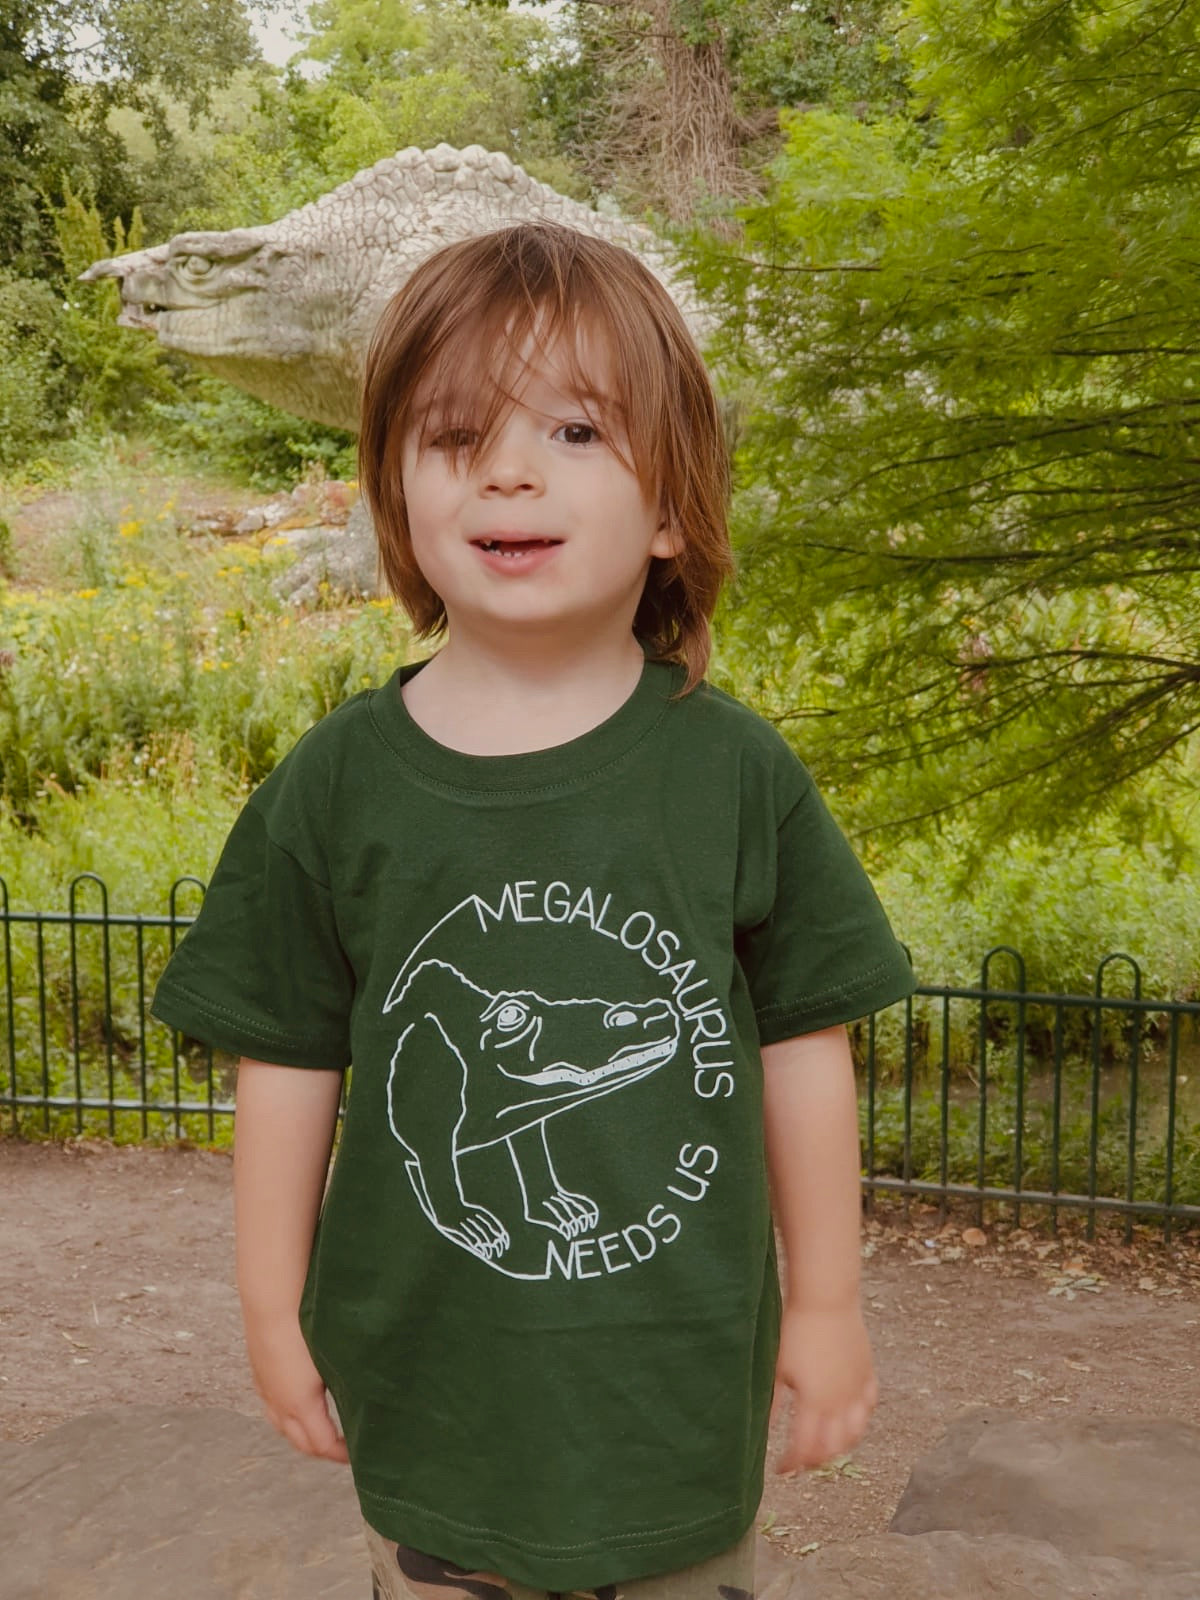 Megalosaurus Needs Us Kids T shirt